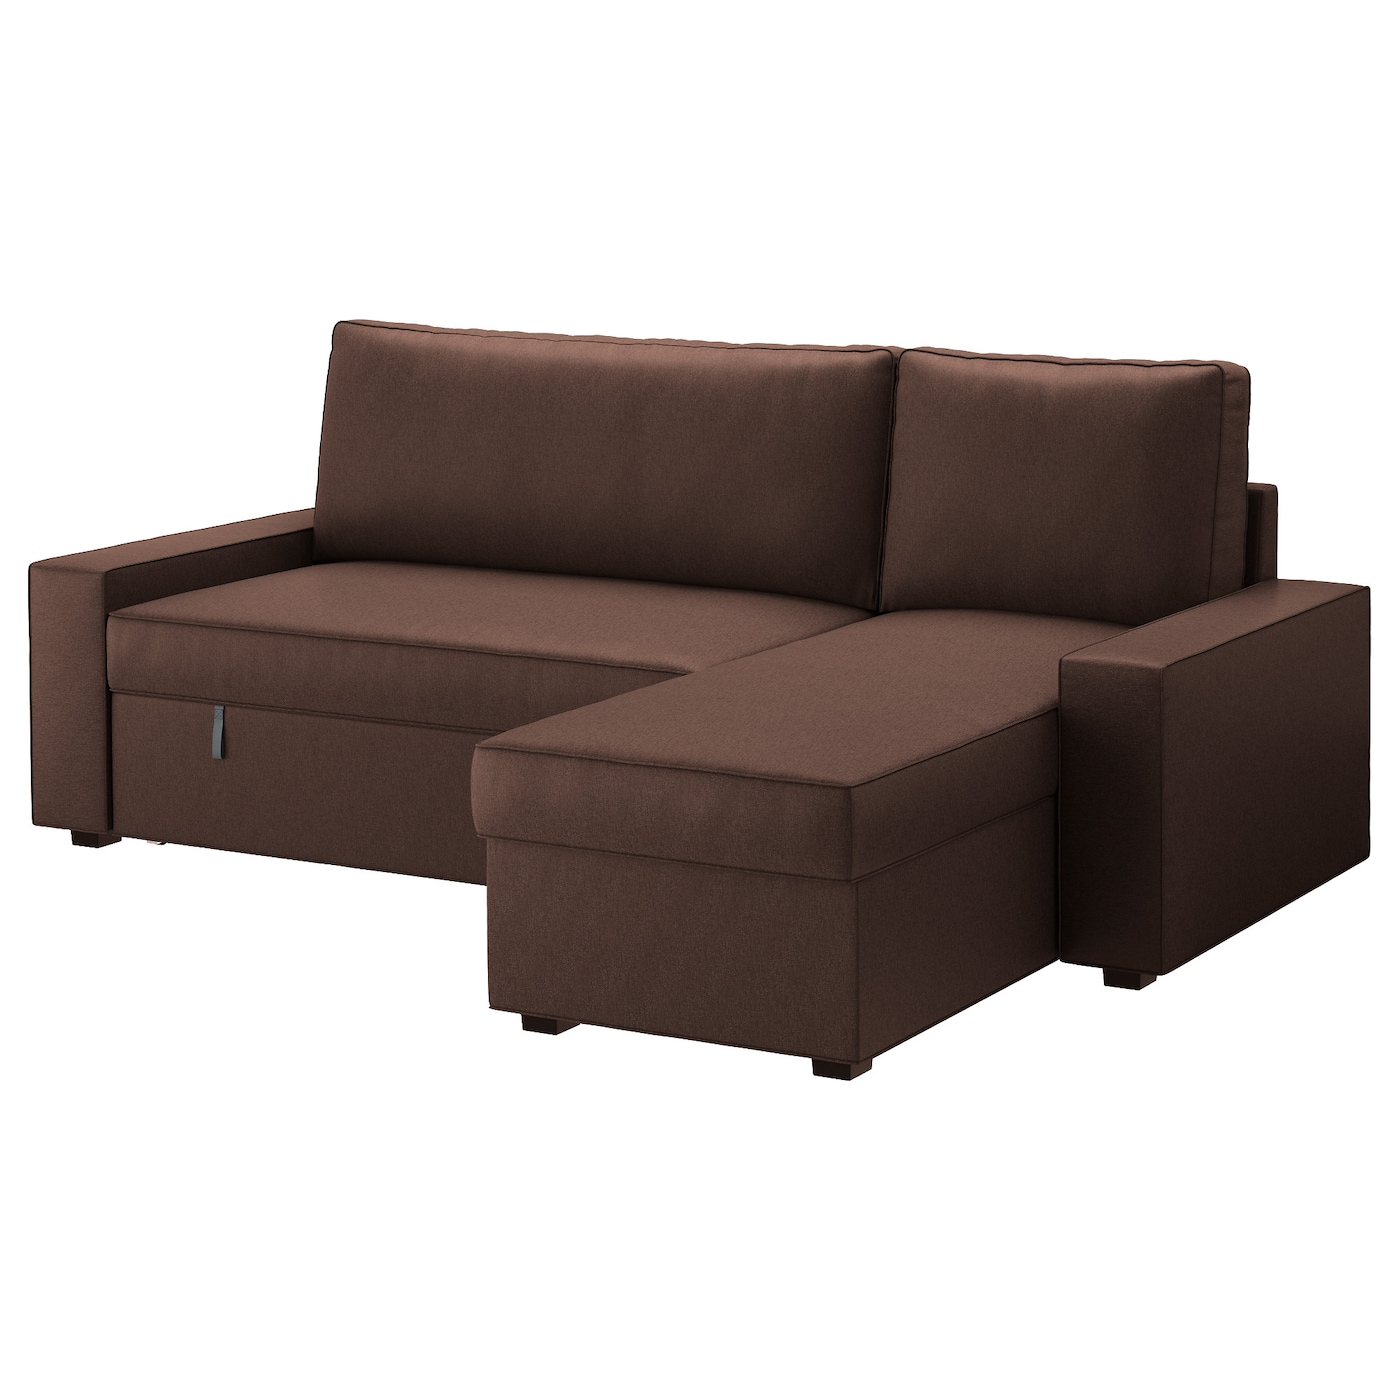 vilasund sofa bed with chaise longue borred dark brown ikea. Black Bedroom Furniture Sets. Home Design Ideas